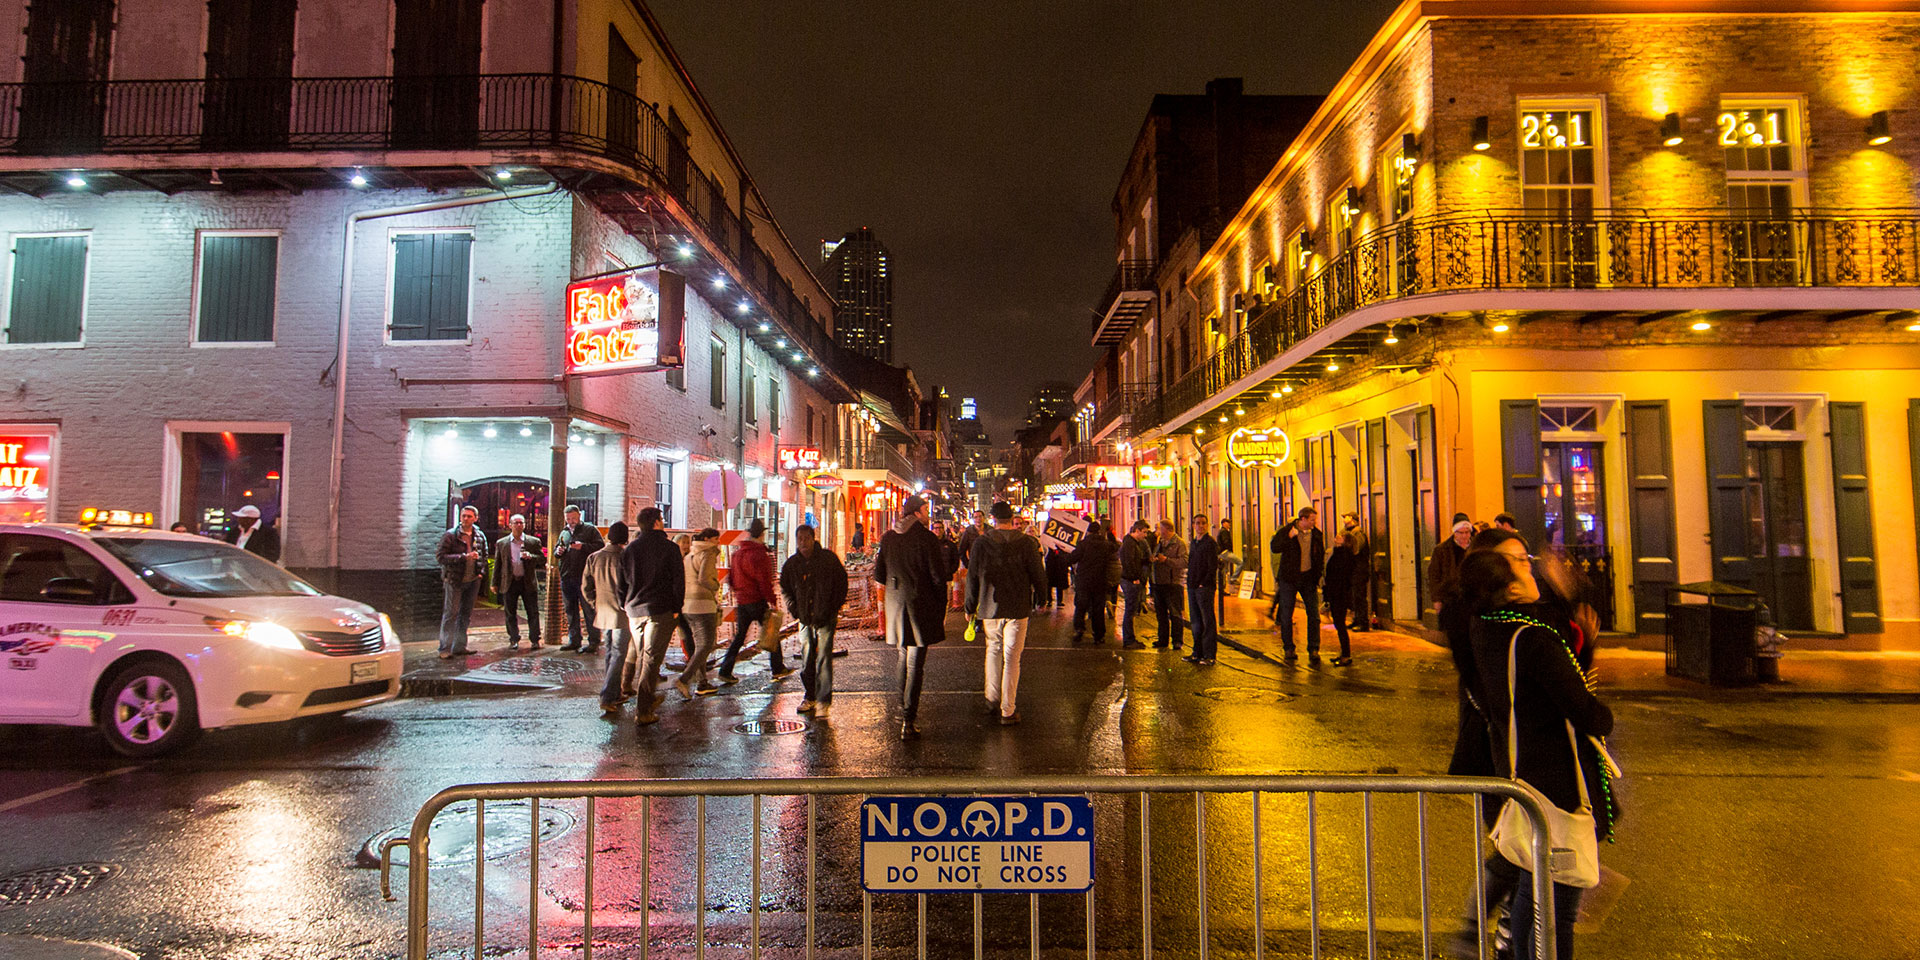 Find local favorites in New Orleans' Bourbon Street.